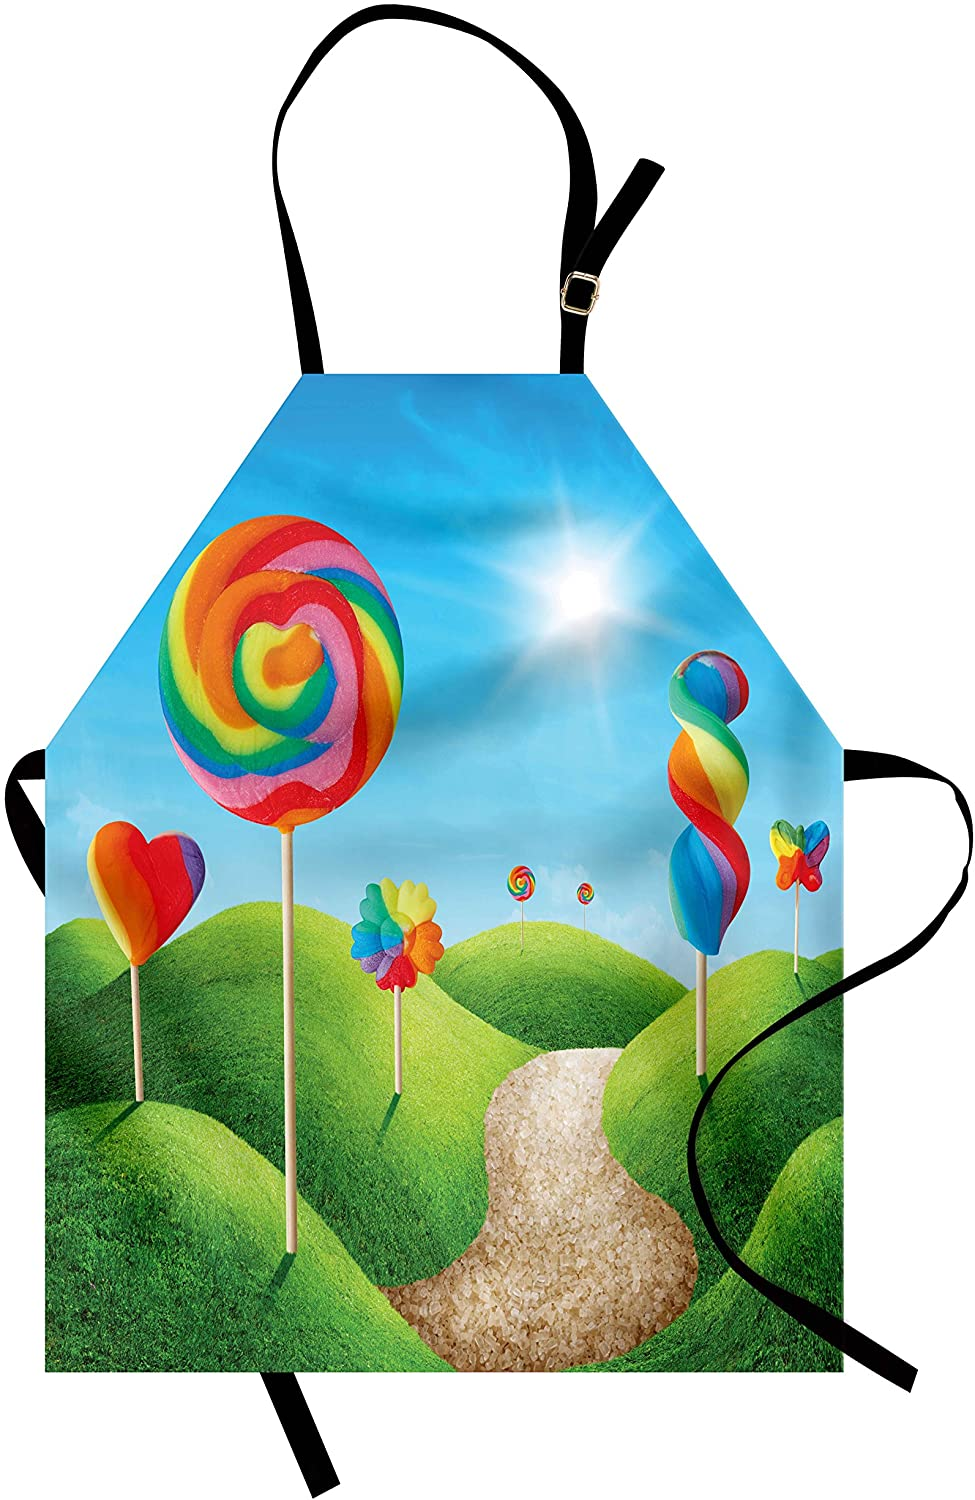 Ambesonne Fantasy Apron, Surreal Candy Land Delicious Lollipops and Sweets Sun Cheerful Fun Print, Unisex Kitchen Bib with Adjustable Neck for Cooking Gardening, Adult Size, Green Blue